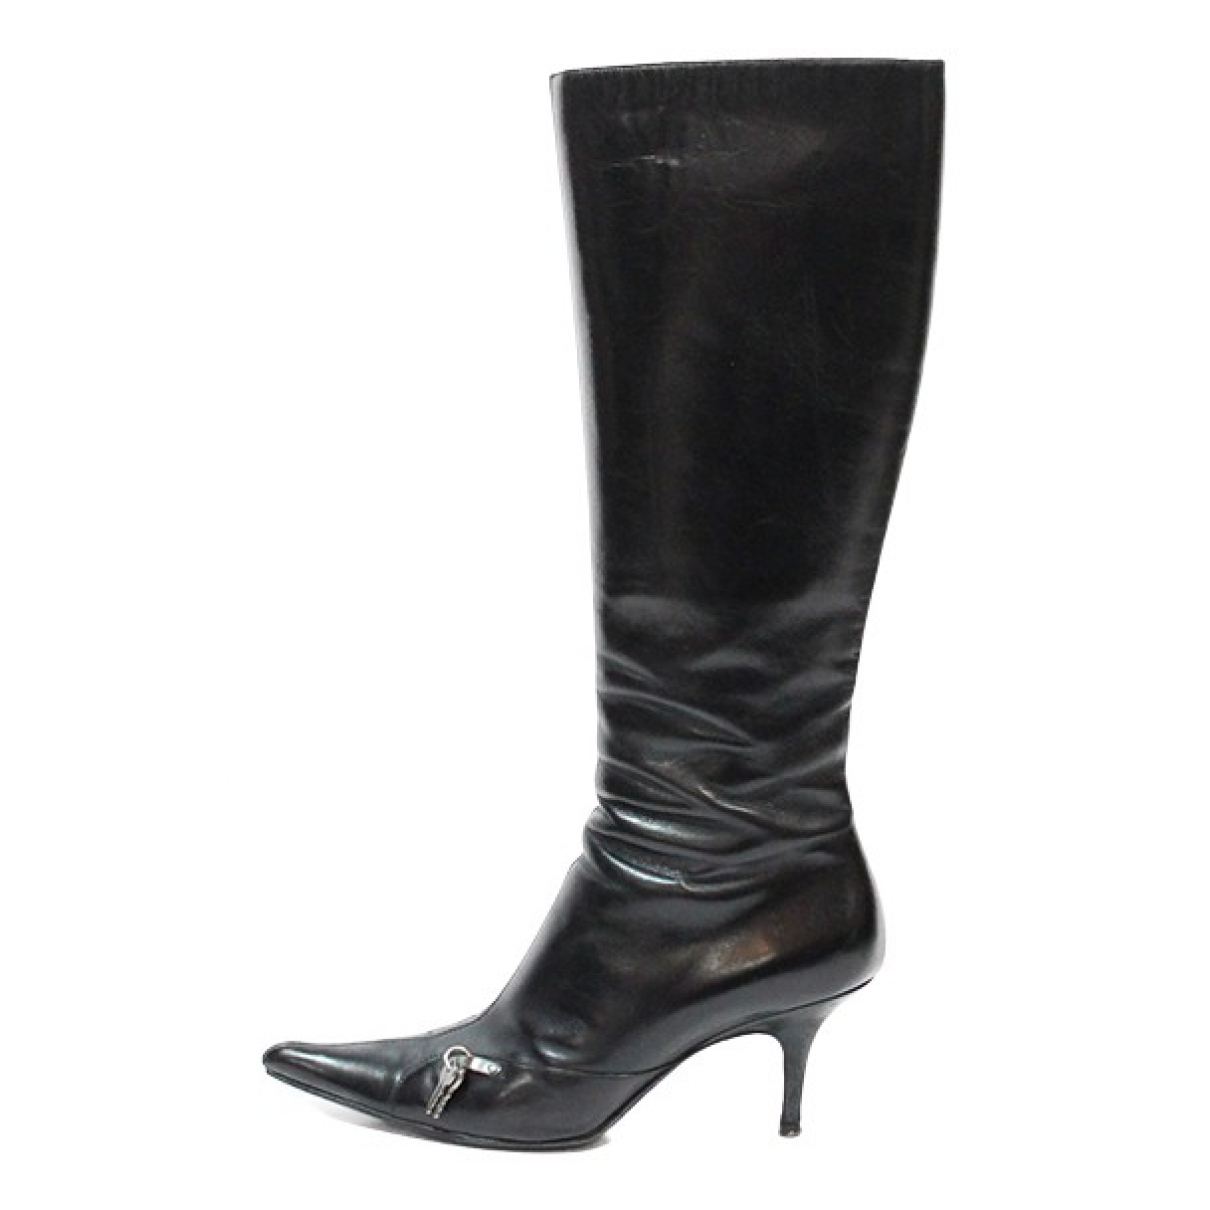 Dior N Black Leather Boots for Women 40.5 EU